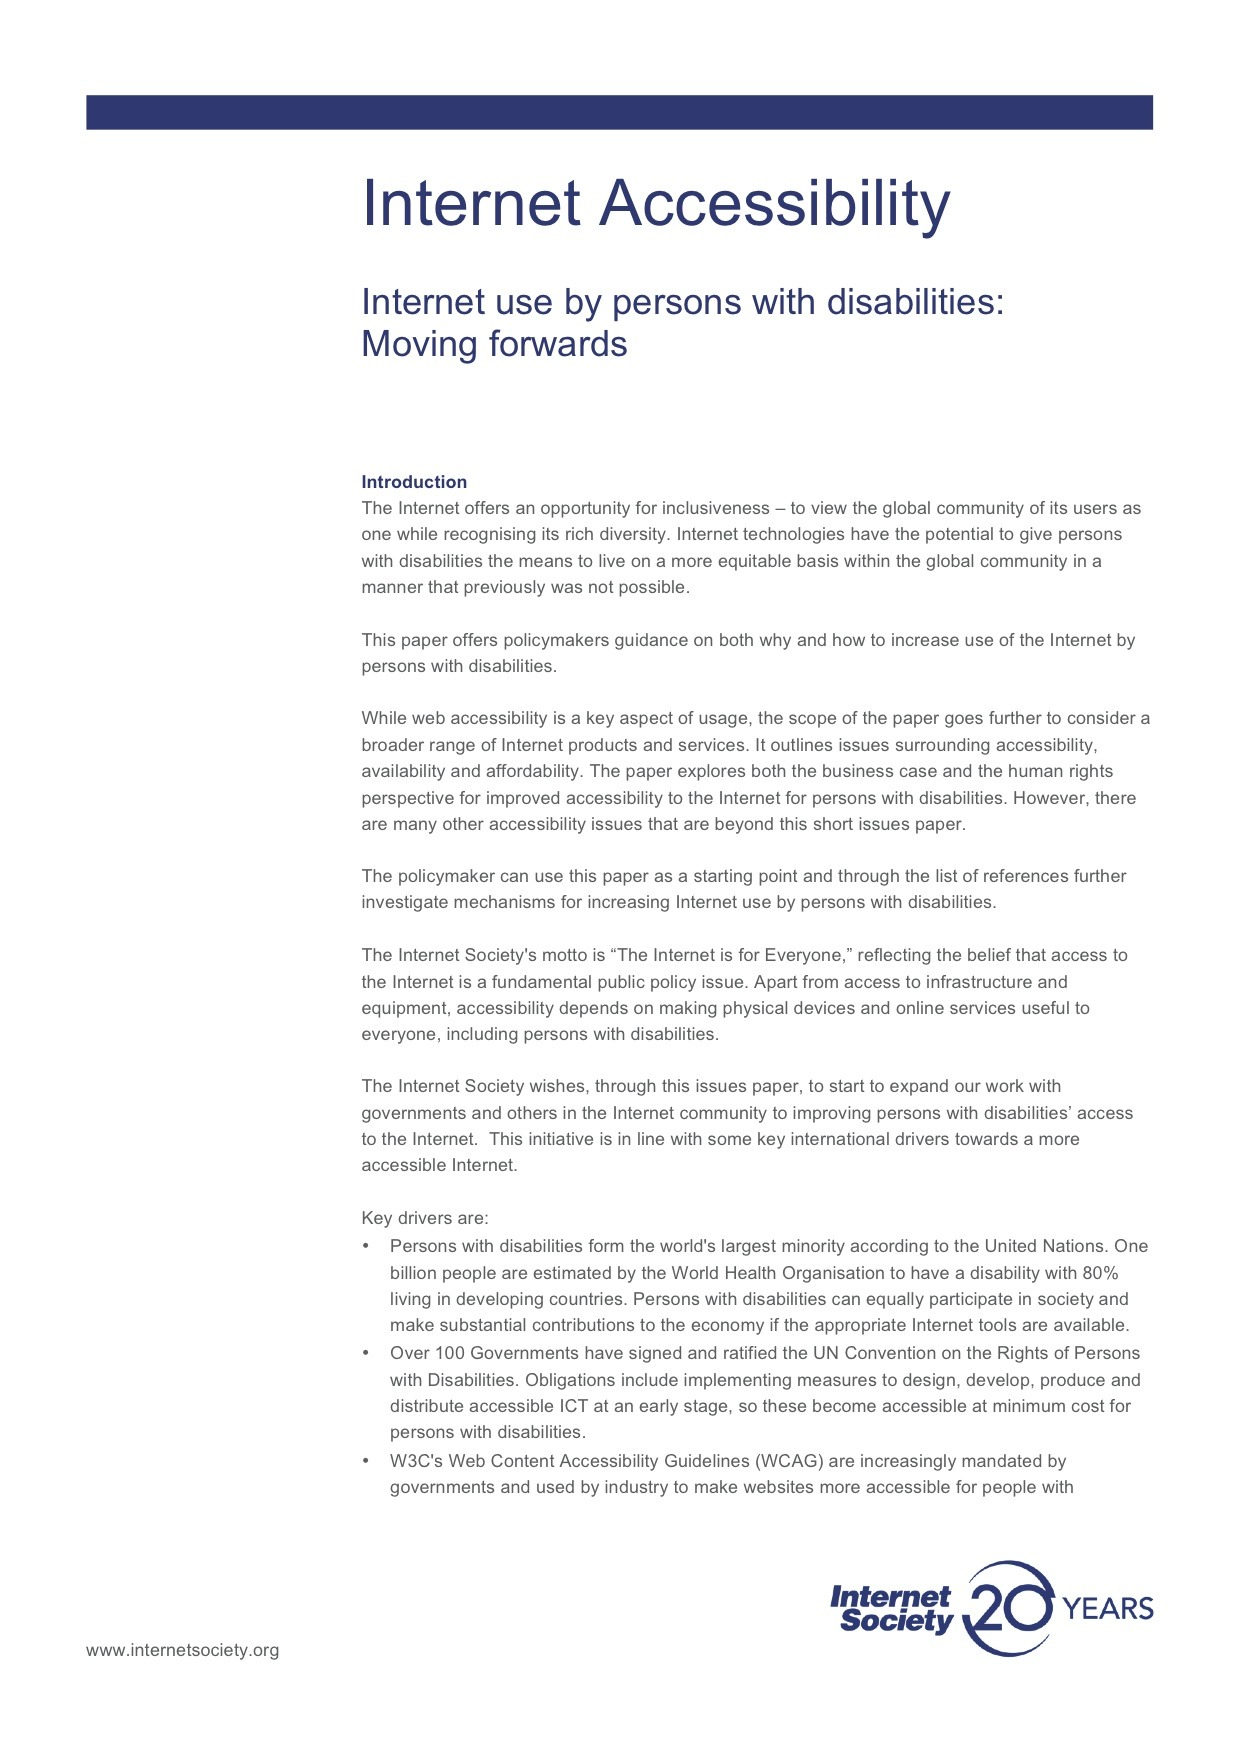 Internet Accessibility: Internet use by persons with disabilities ...